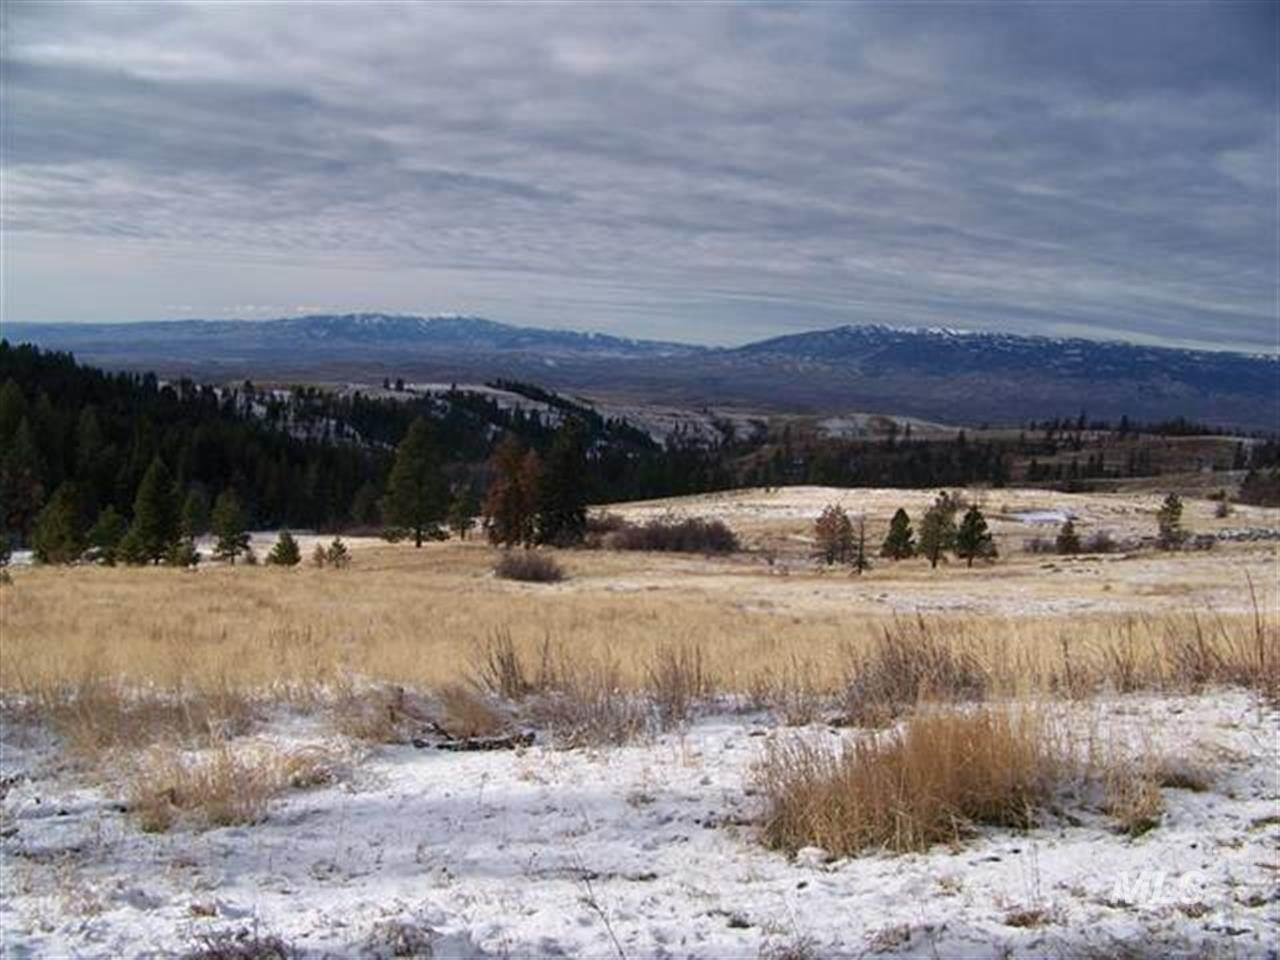 40 Little Fall Creek, Council, Idaho 83612, Land For Sale, Price $275,000, 98682704